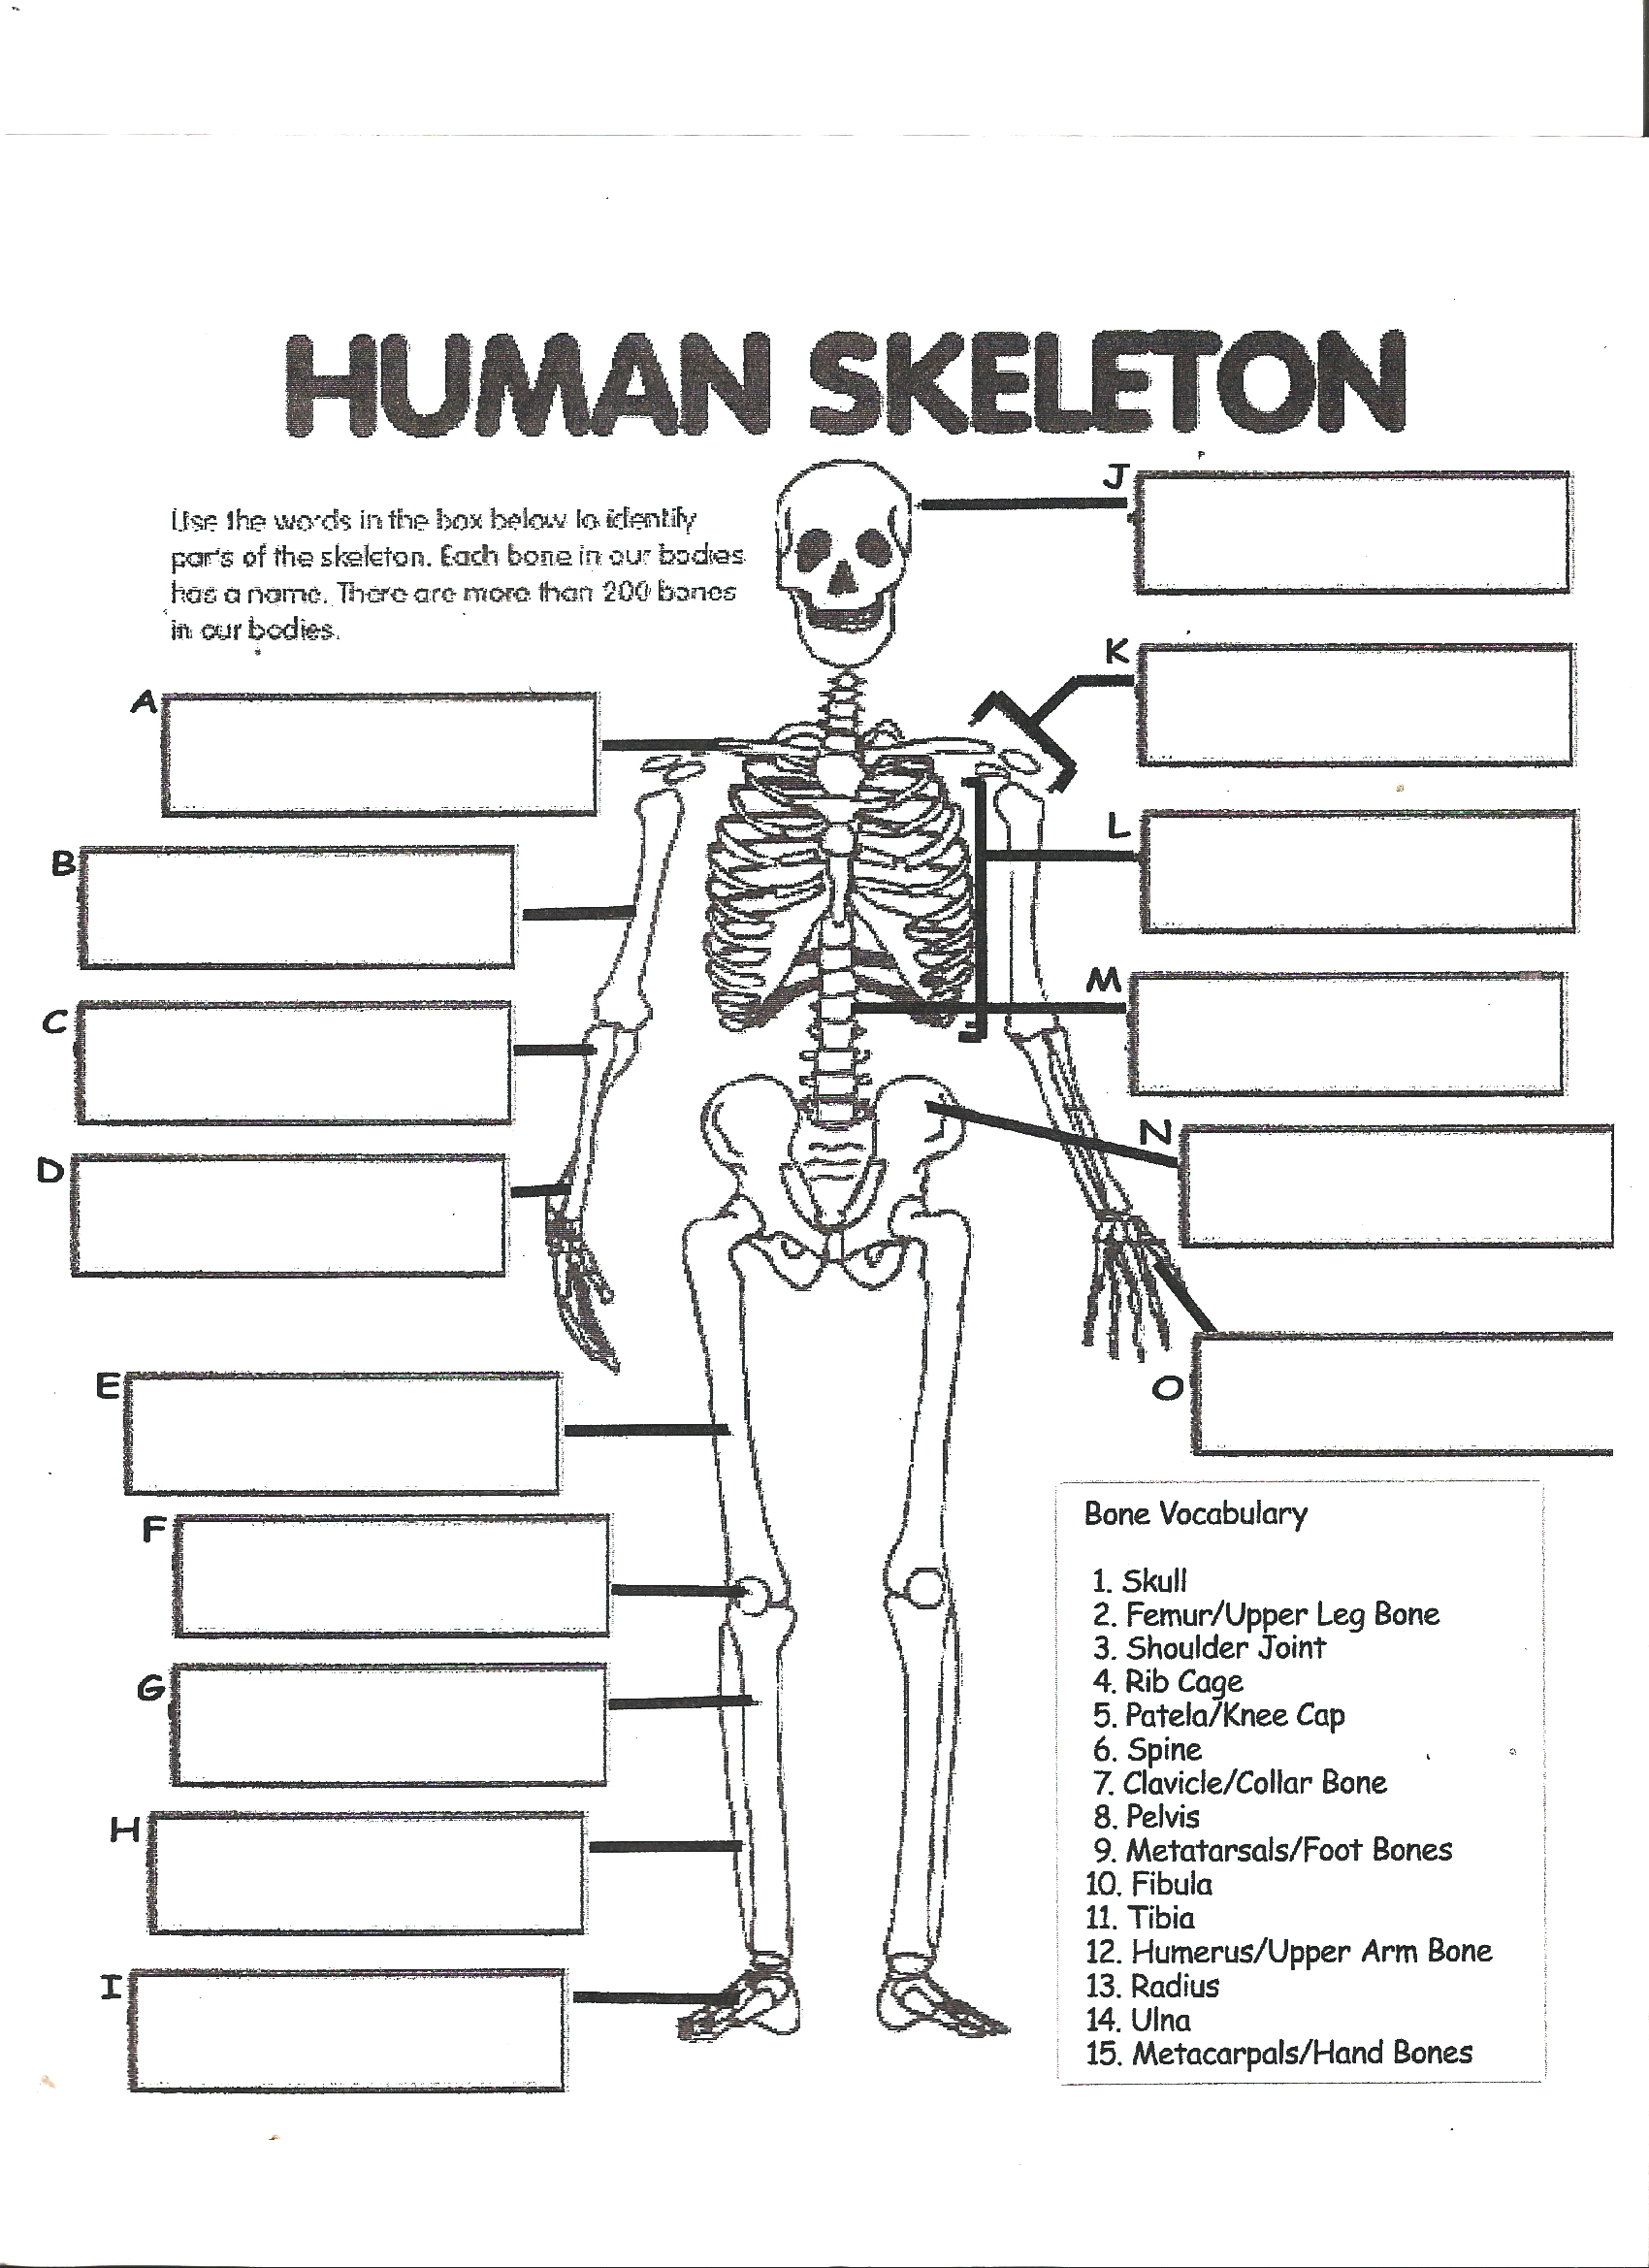 Human Skeleton Anatomy Activity